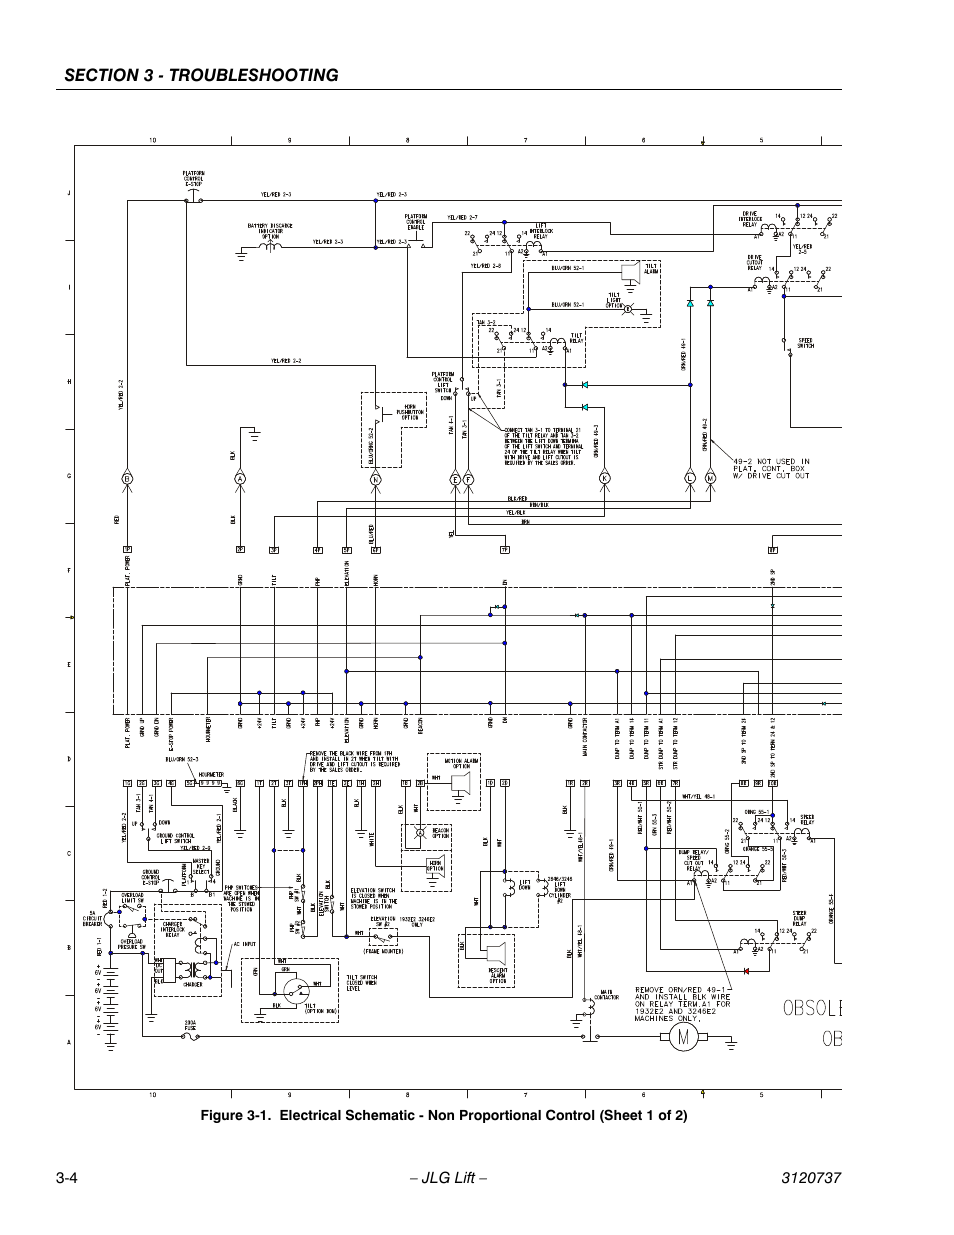 jlg 3246e2 ansi service manual user manual page 72 86 also for rh manualsdir com 4 Pin Trailer Diagram 7 Pin Trailer Wiring Diagram